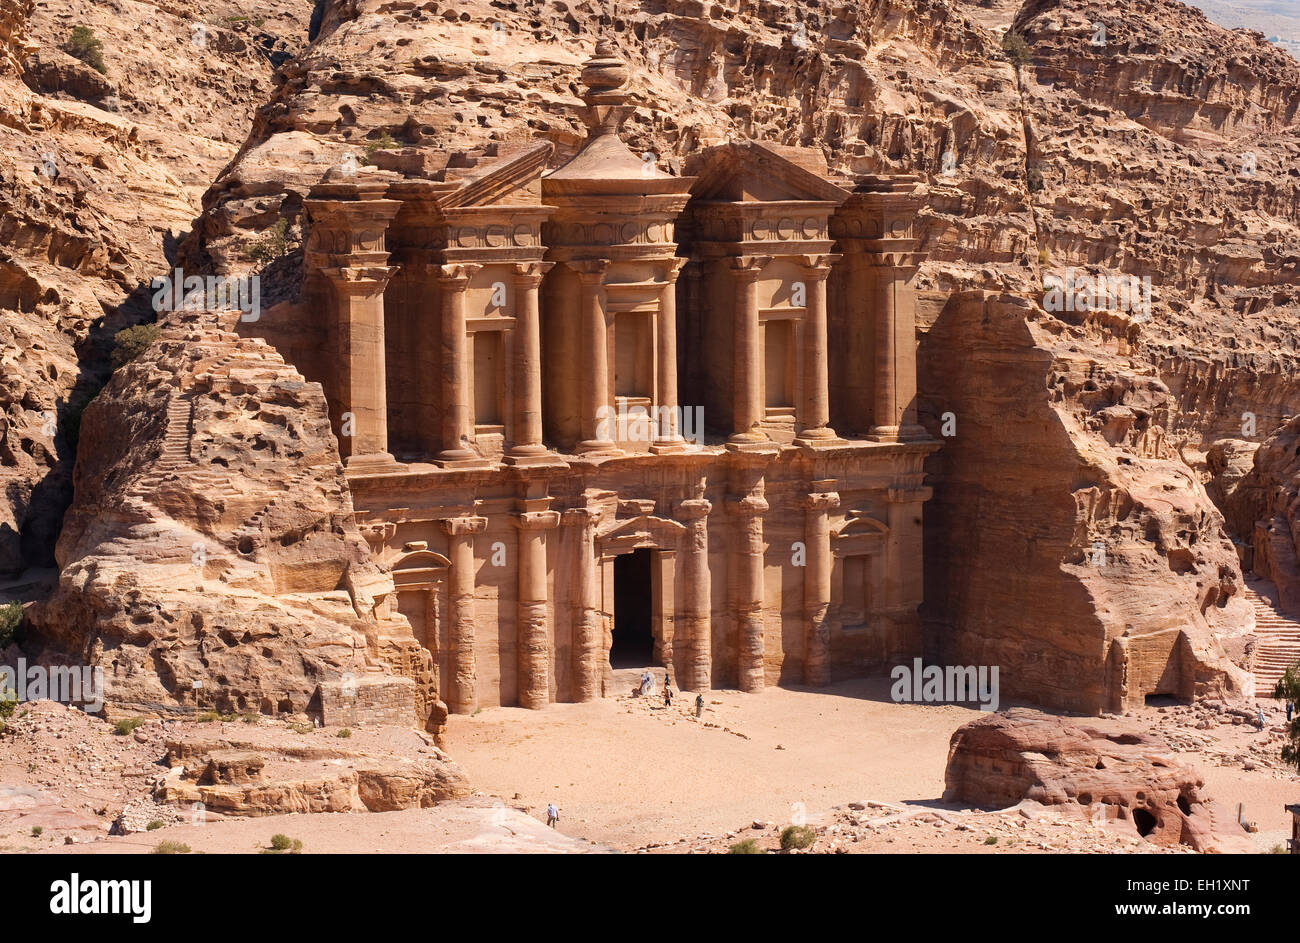 The Ad Deir monastery in Petra in Jordan - Stock Image